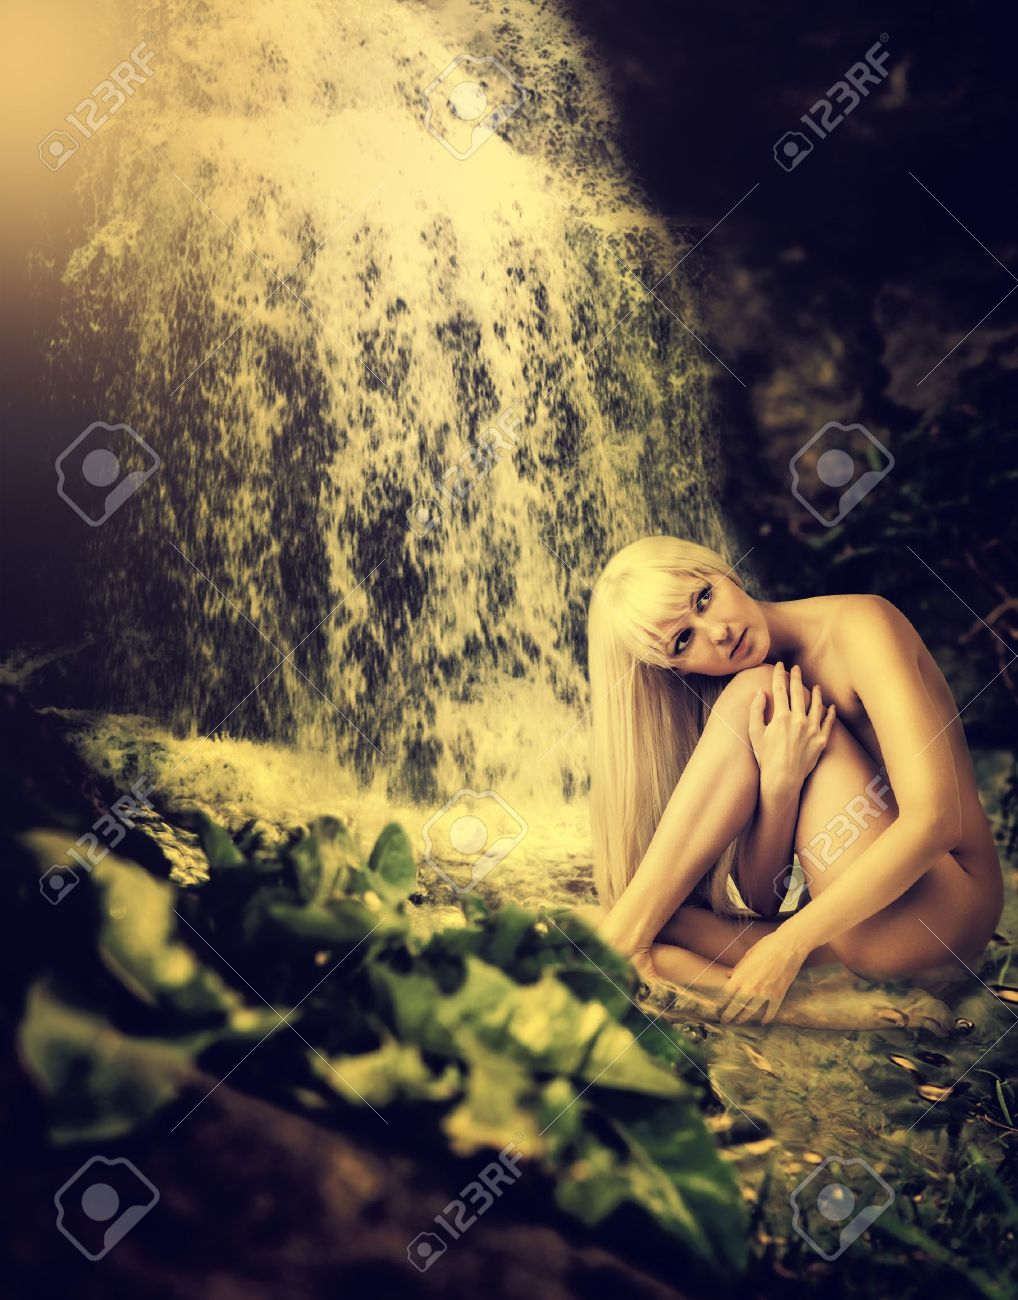 Beautiful fantasy summer landscape with lagoon, waterfall and sexy blond woman sitting in water Stock Photo - 19940246